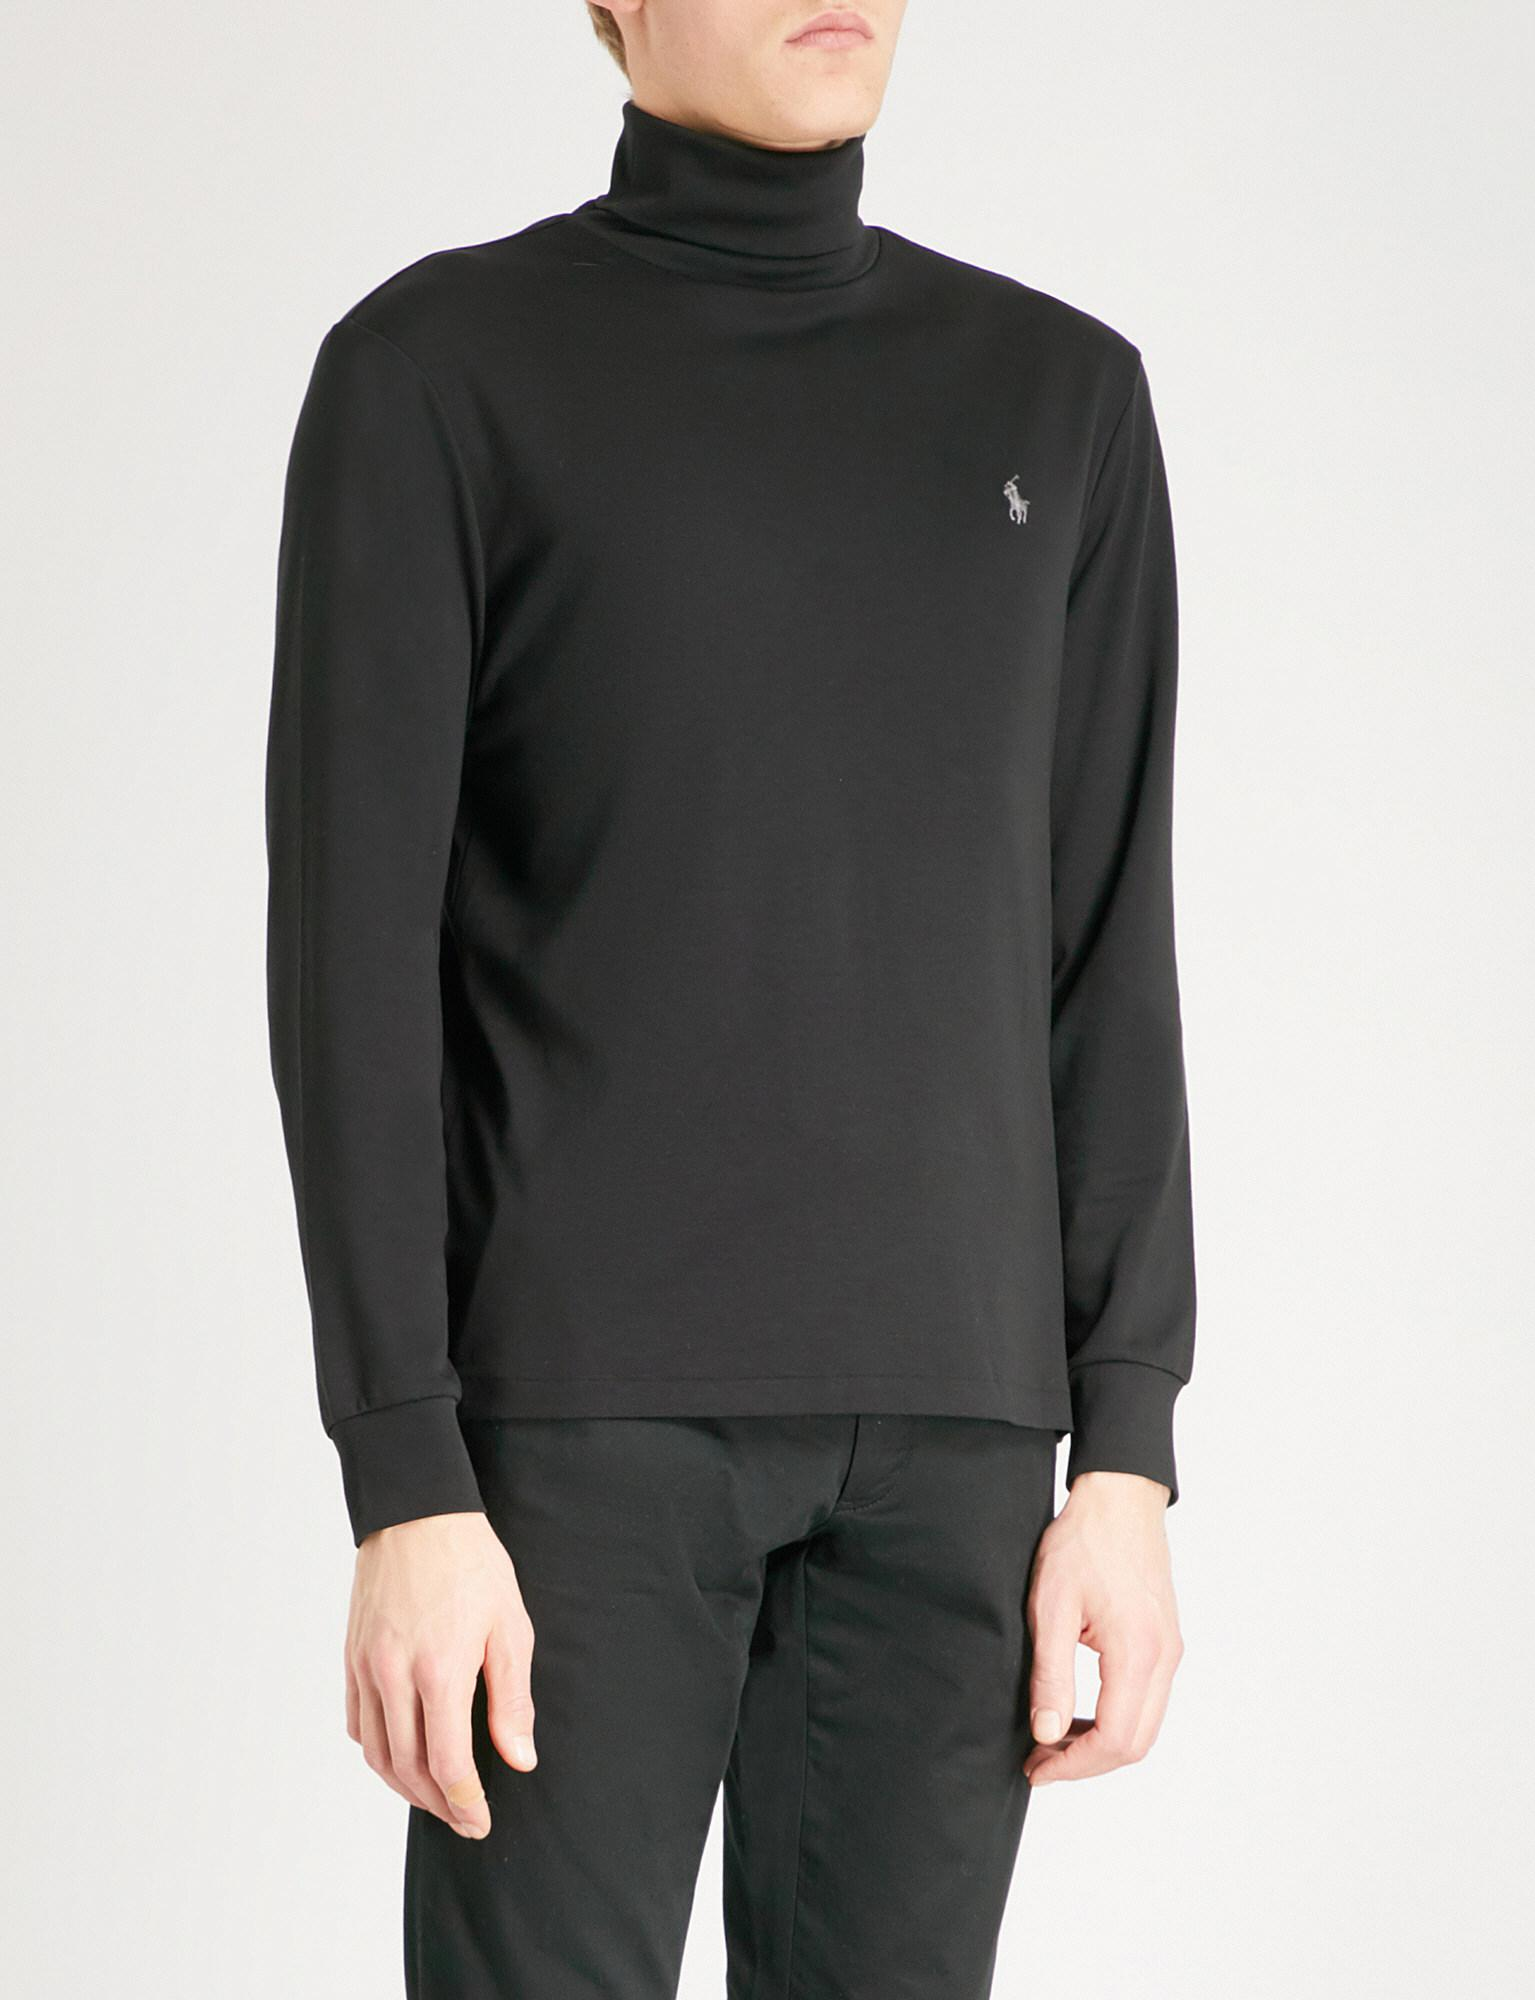 ralph lauren mens clothing sale polo turtleneck sweater